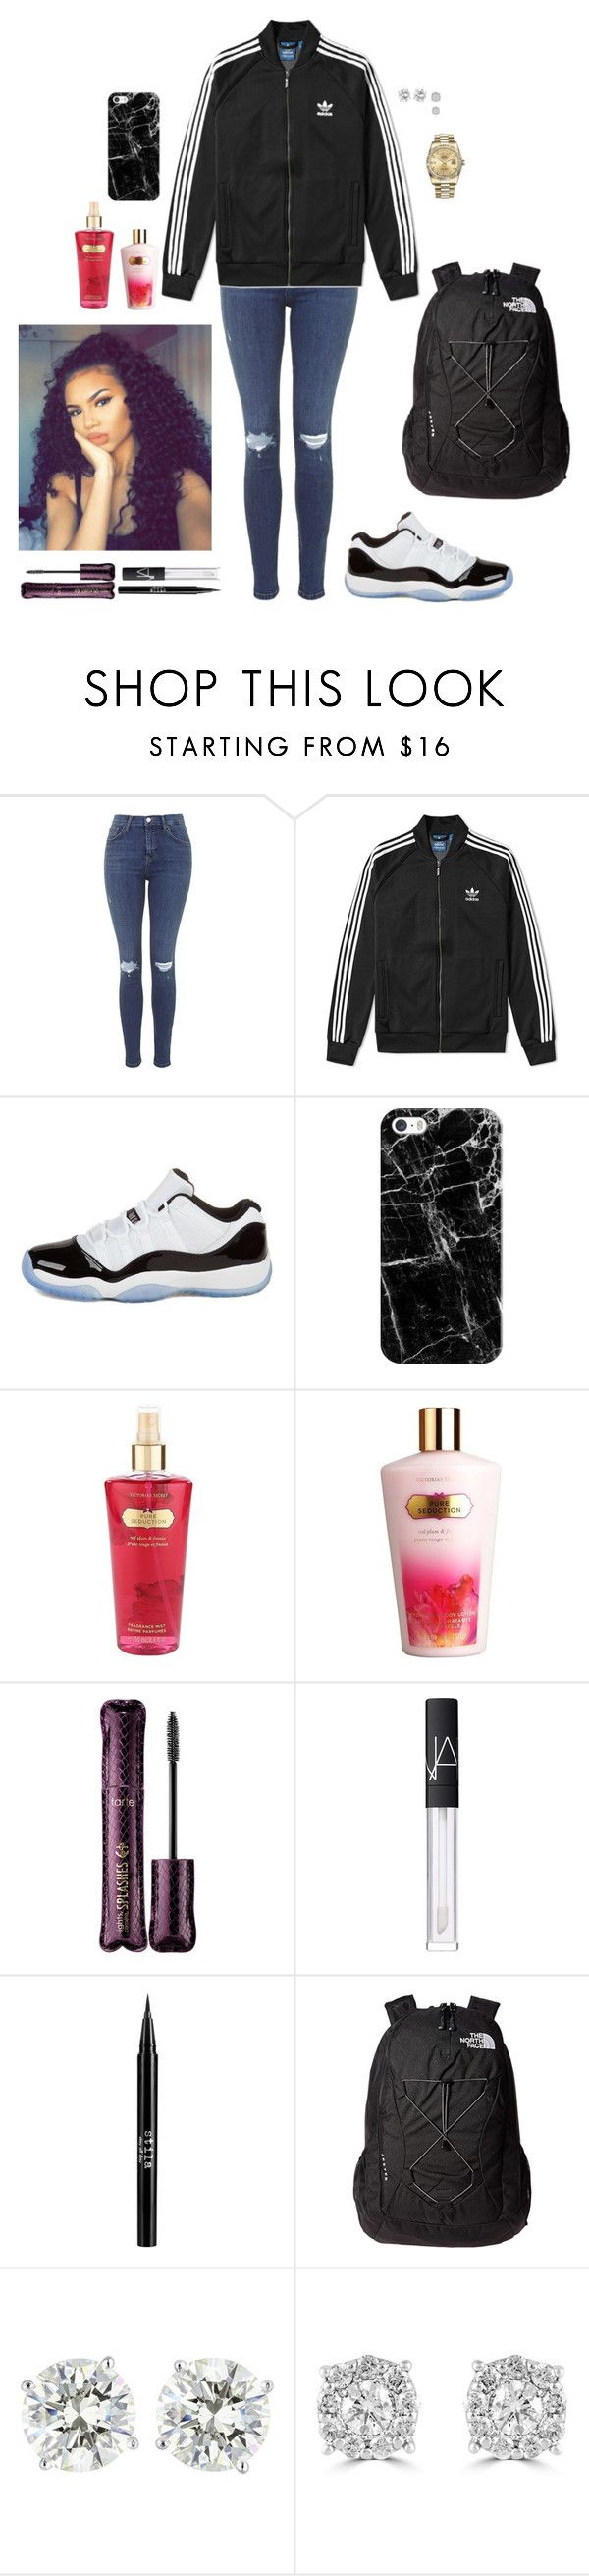 """Wednesday ootd- 1/25/17"" by foxyfries ❤ liked on Polyvore featuring Topshop, adidas, Concord, Casetify, Victoria's Secret, tarte, NARS Cosmetics, Stila, The North Face and Effy Jewelry"